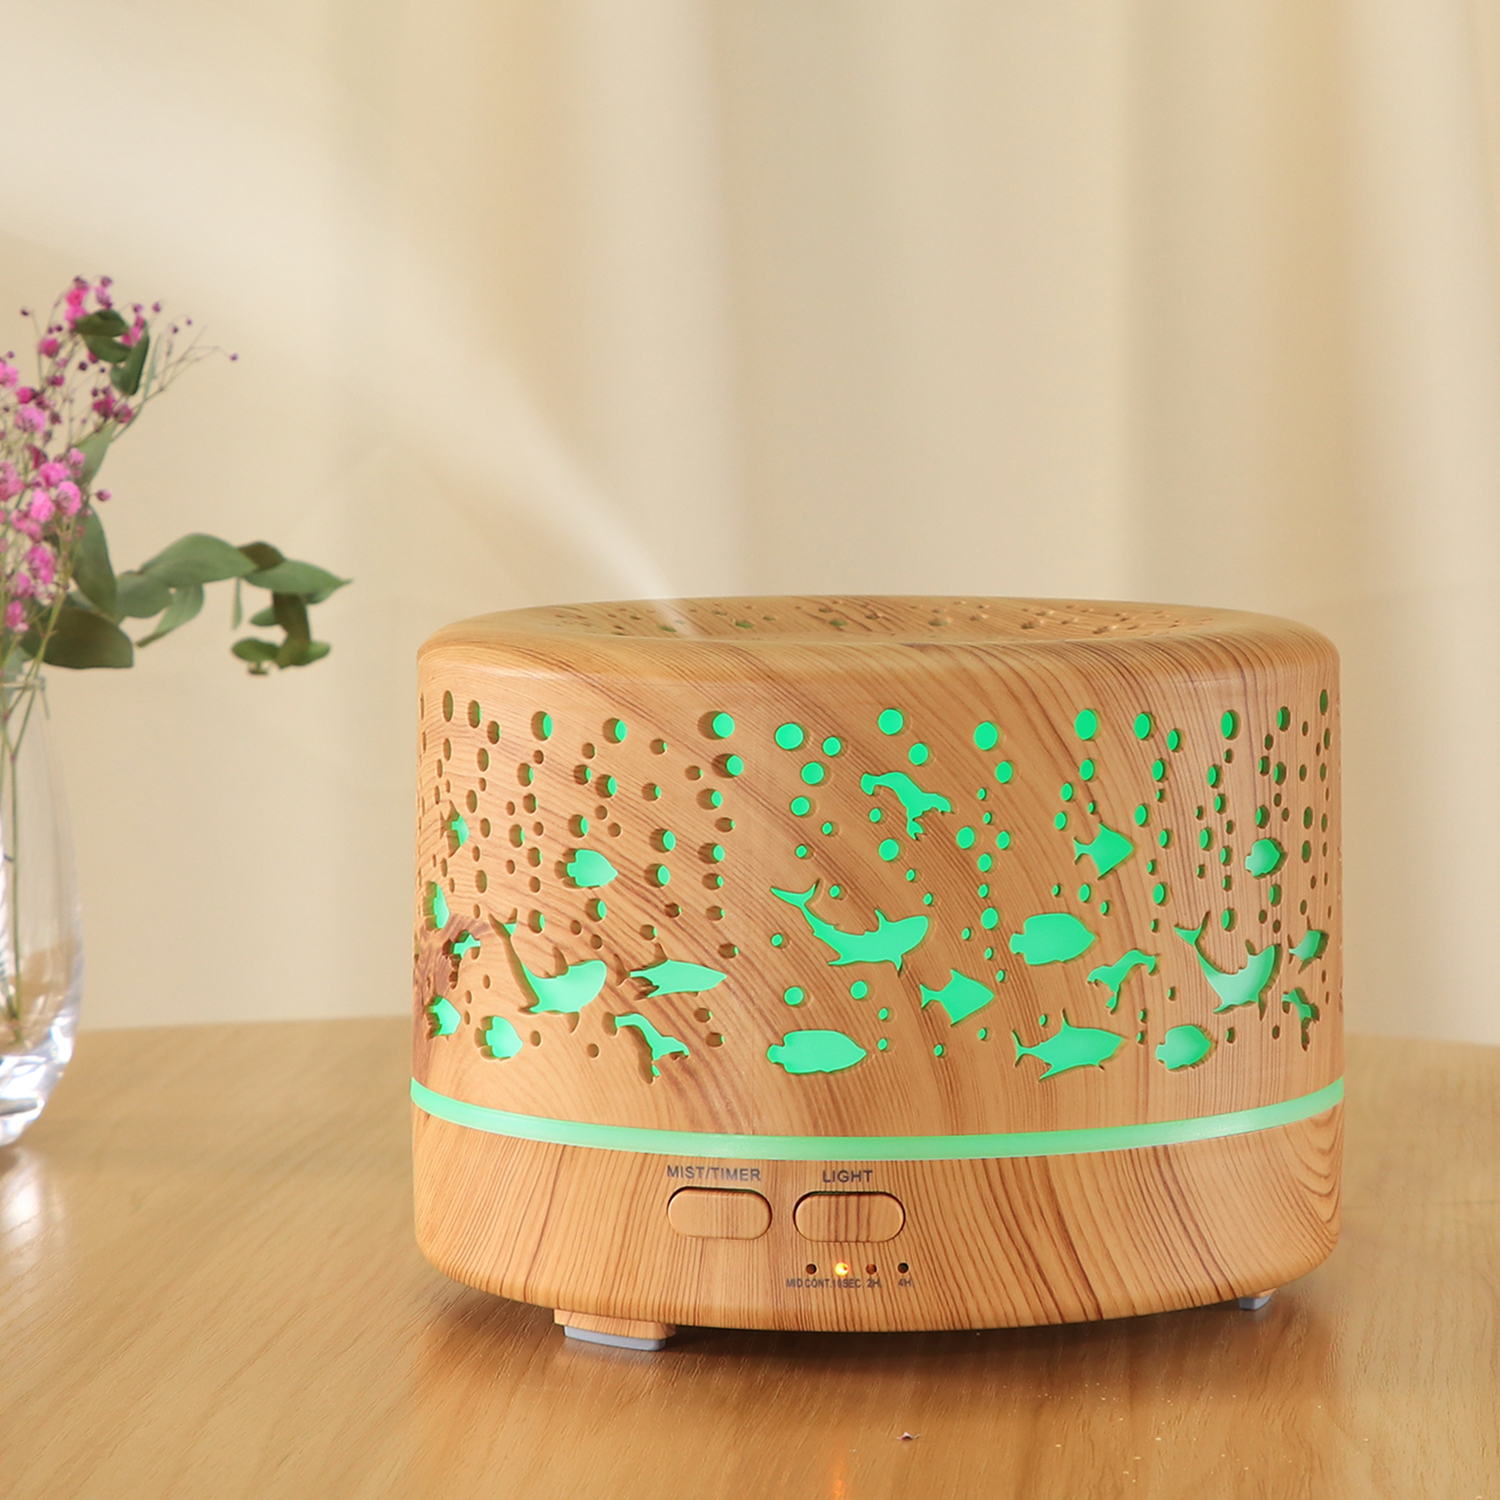 Wood Grain 700ml Ultrasonic Air Humidifier Aromatherapy Essential Oil Aroma Diffuser Cool Mist Humidifier for Office Home